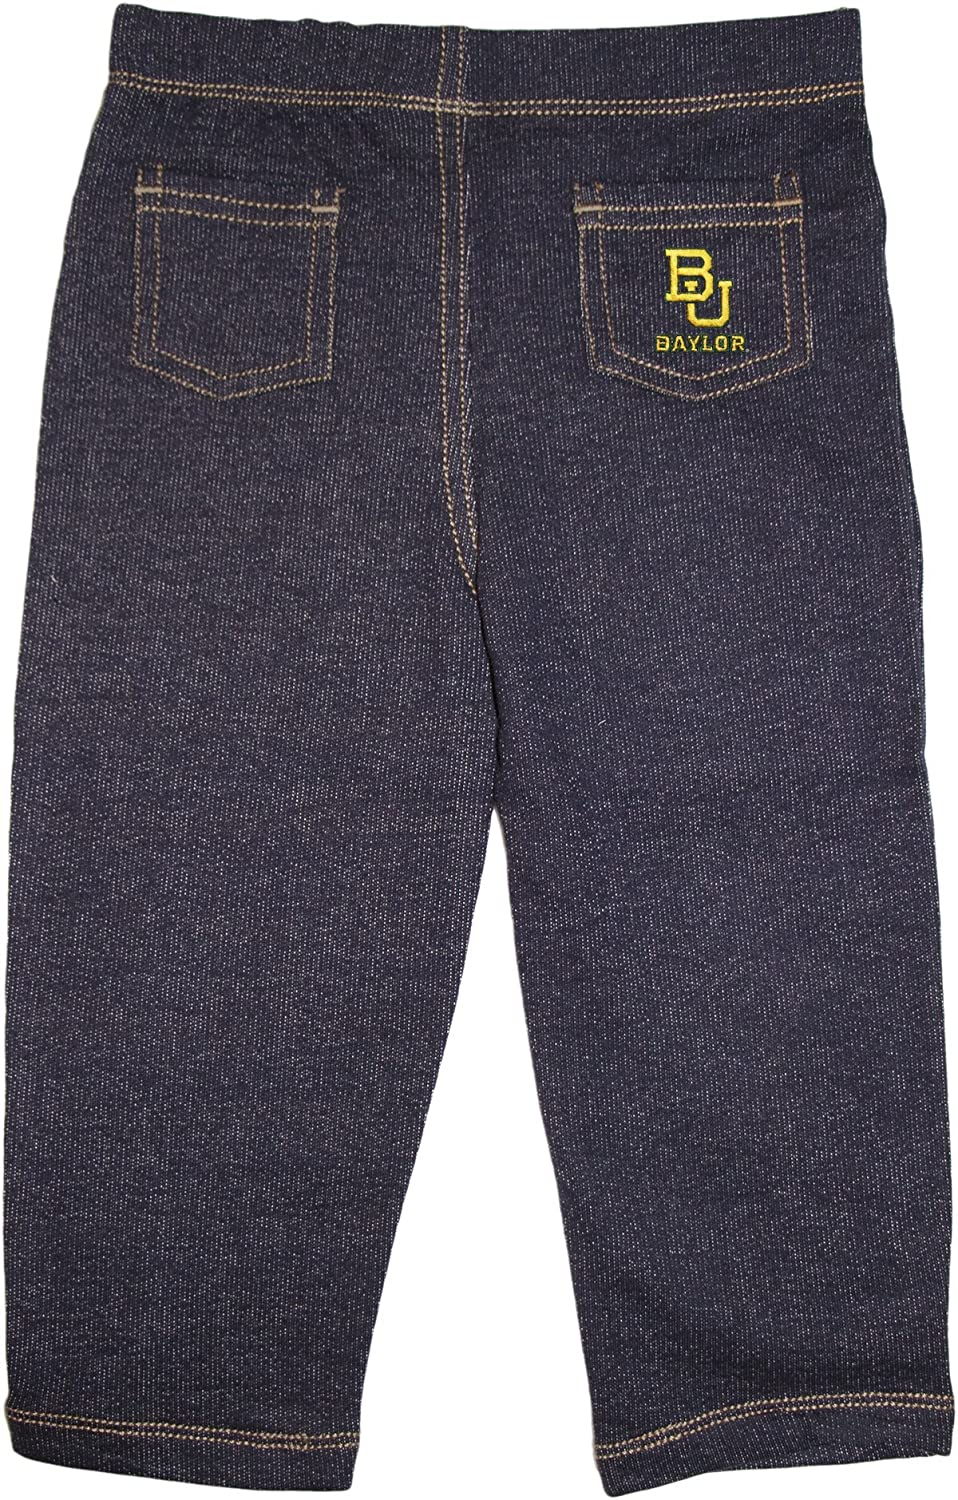 Baylor University Bears Denim Jeans